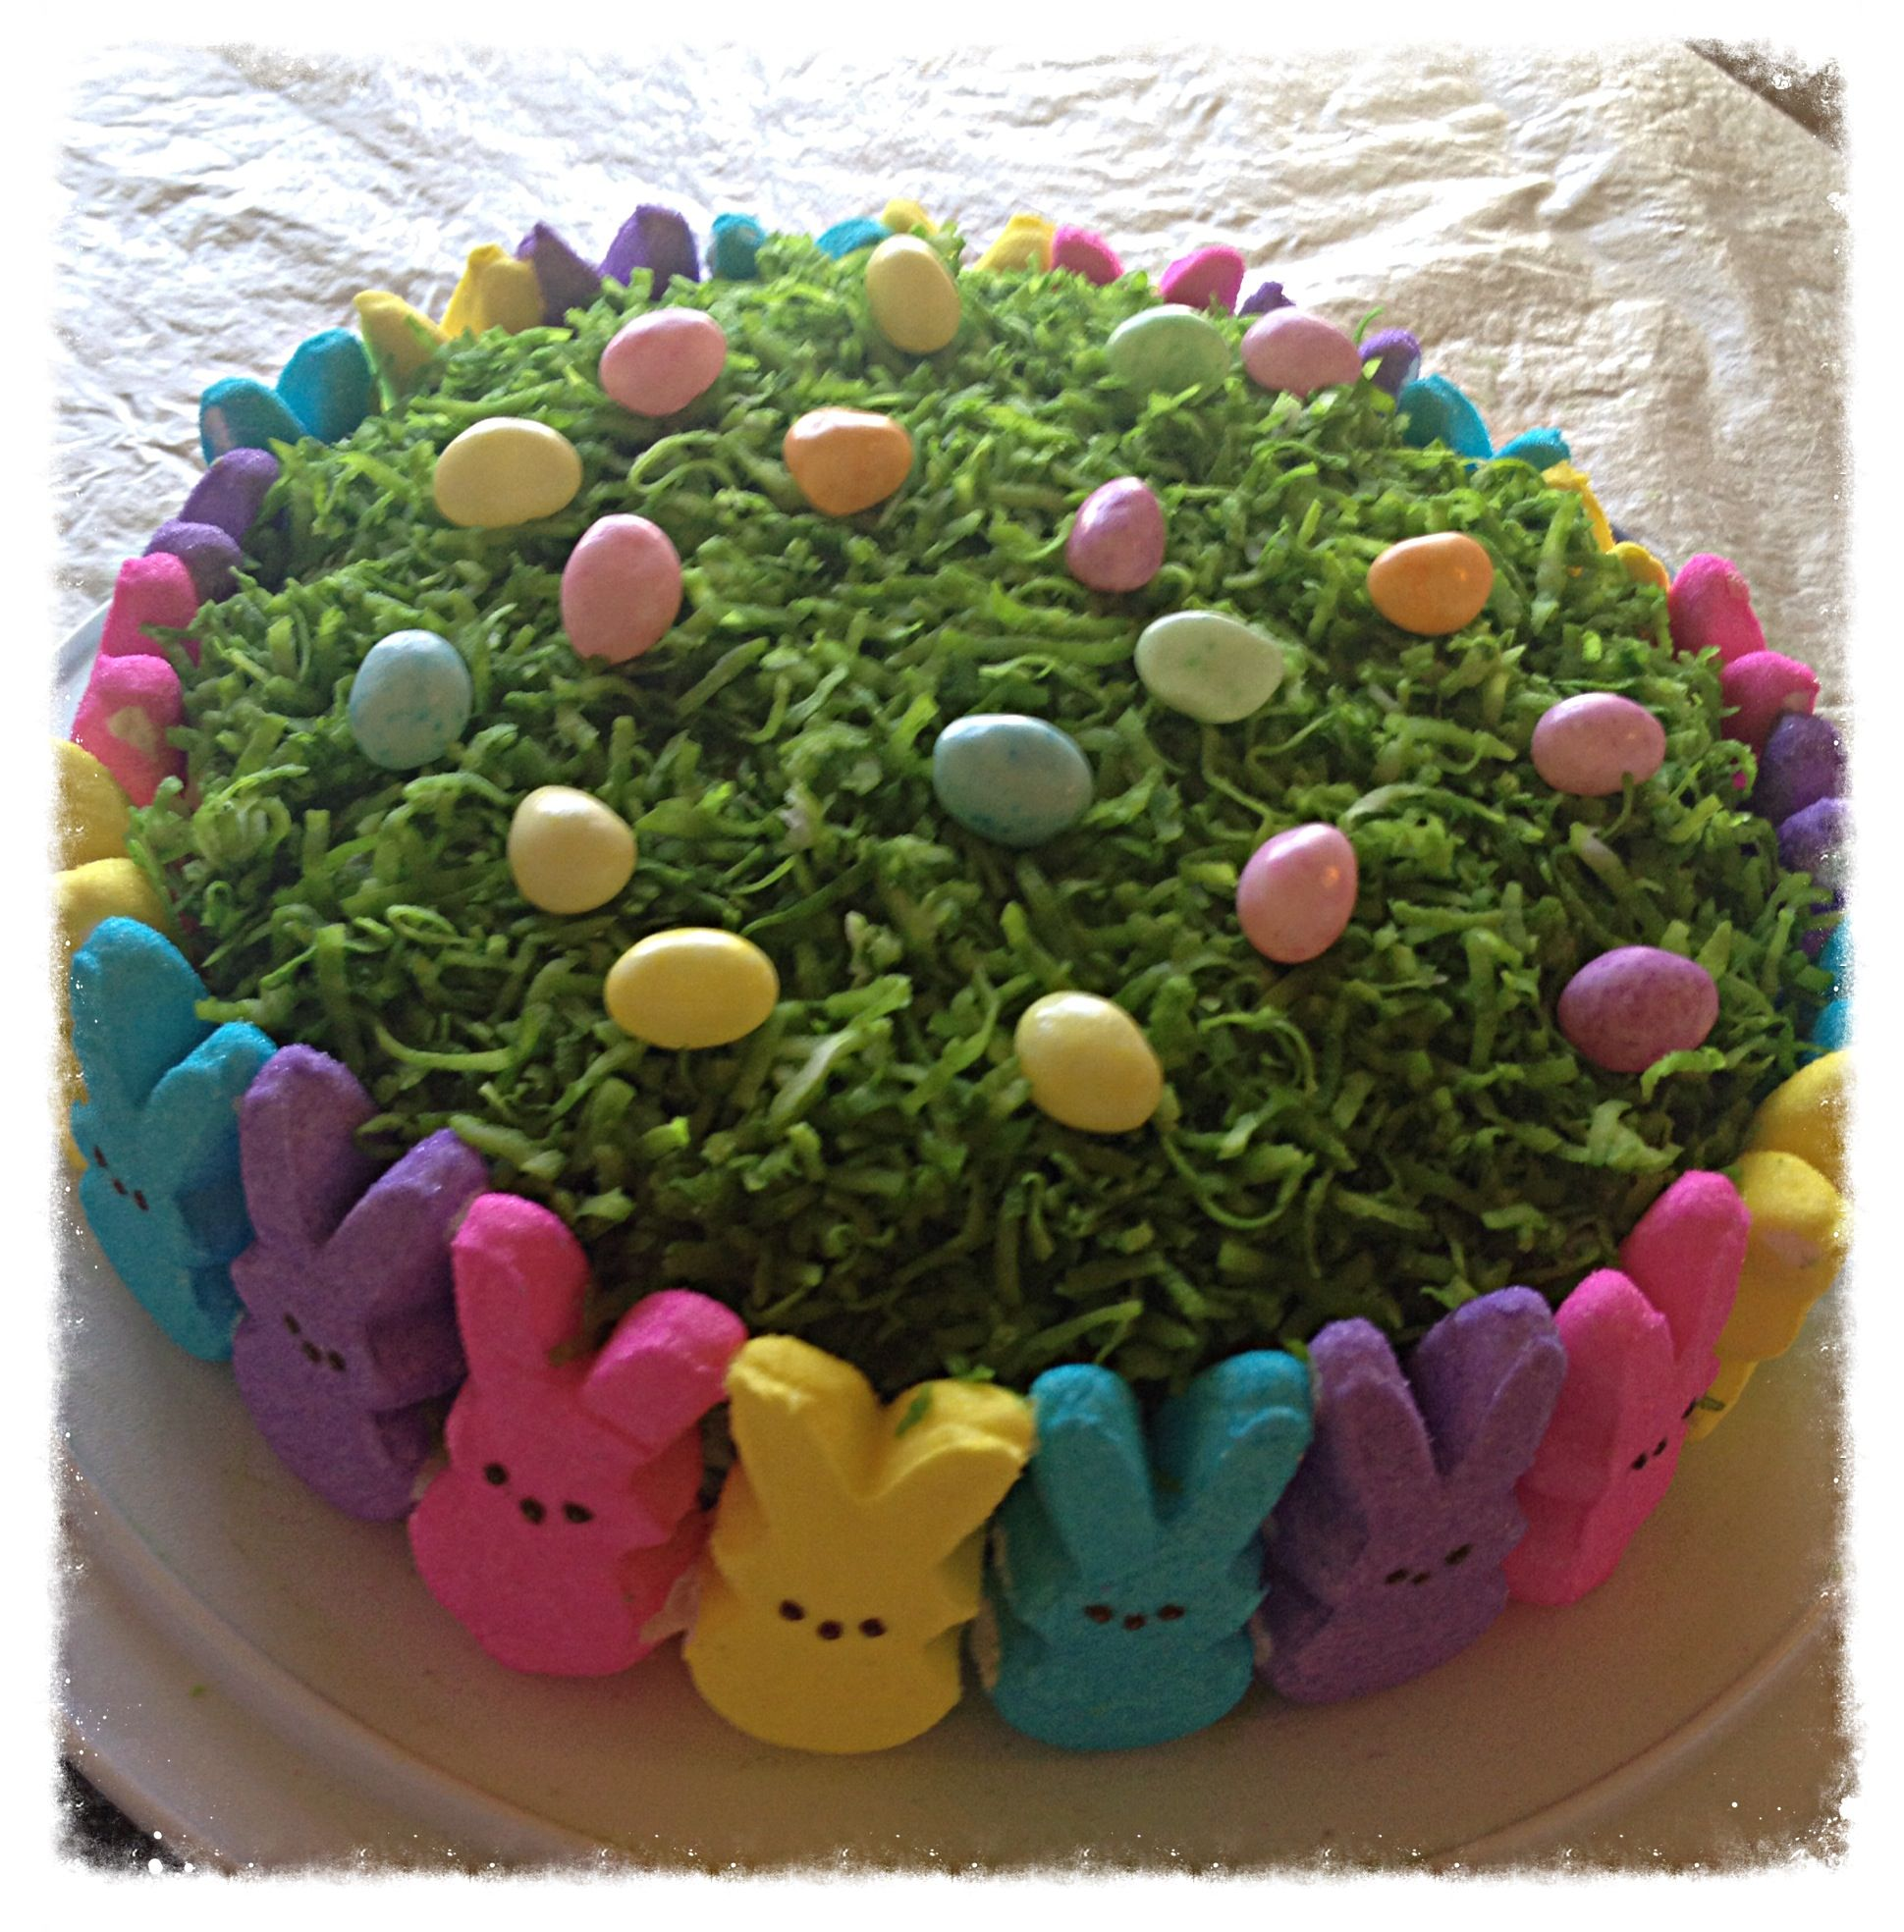 Easter Cake Decorations Pinterest : Easy Easter cake Auna ideas Pinterest